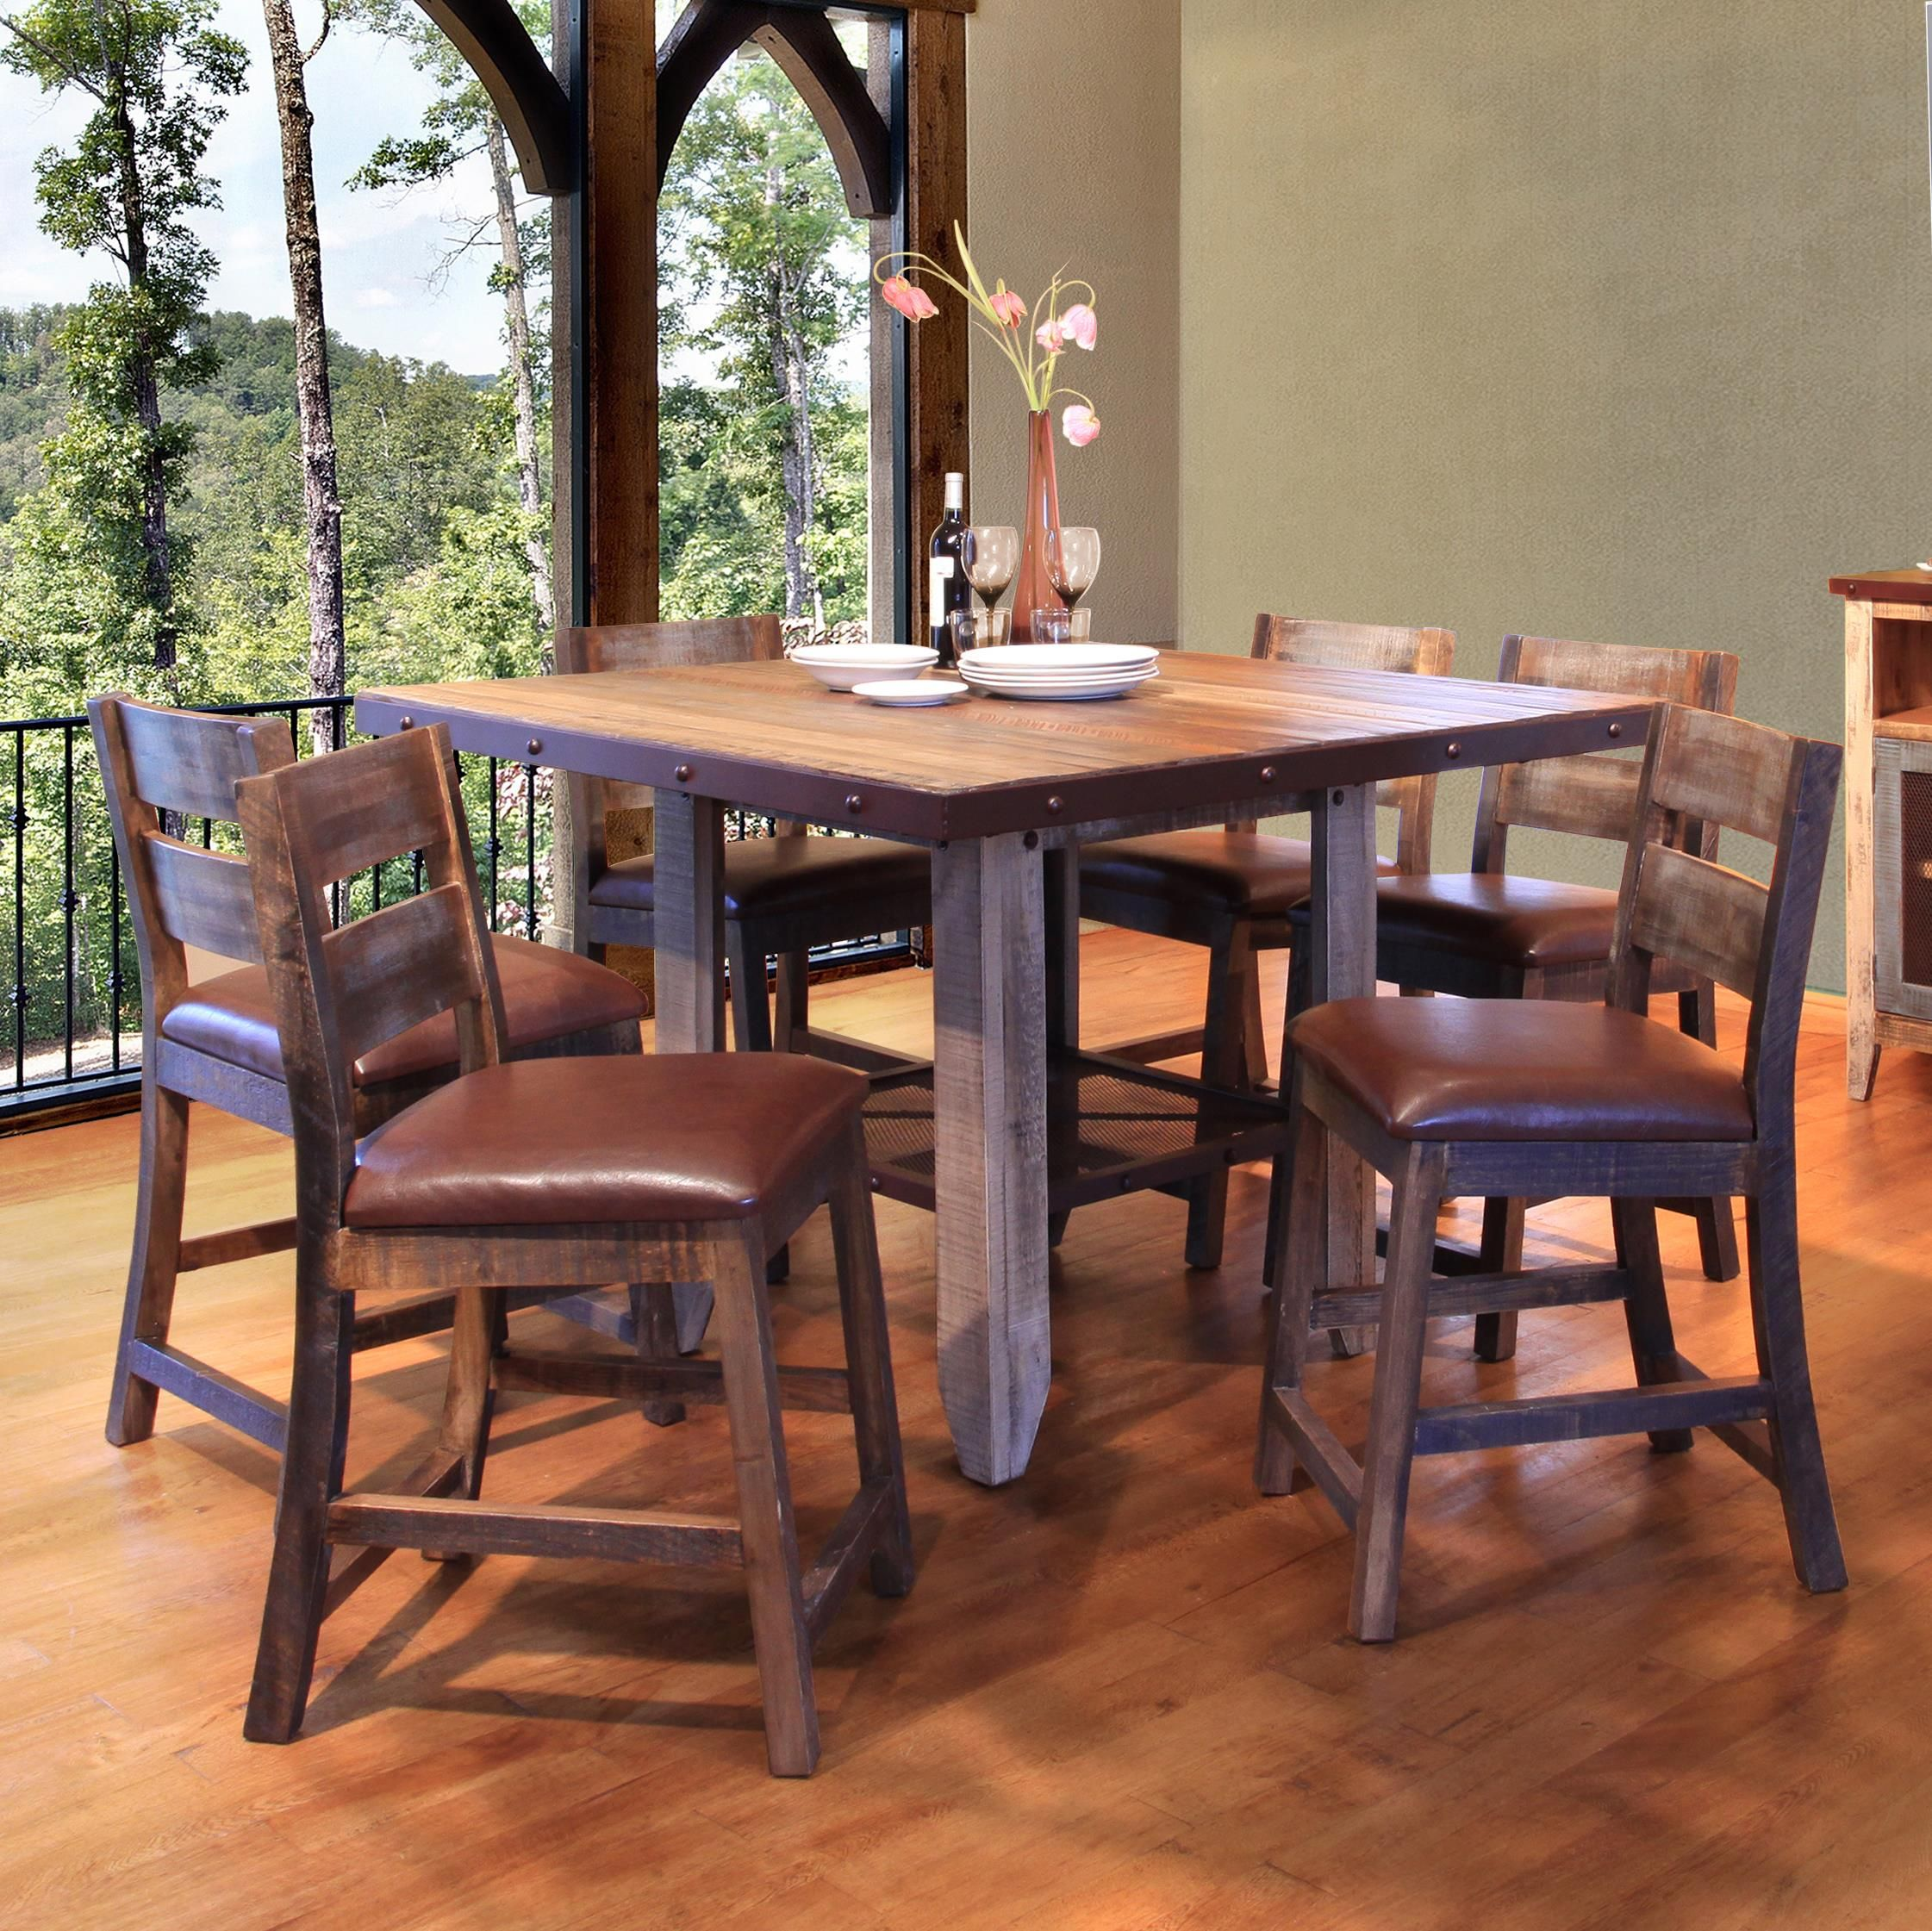 900 antique 52 counter height dining table set by